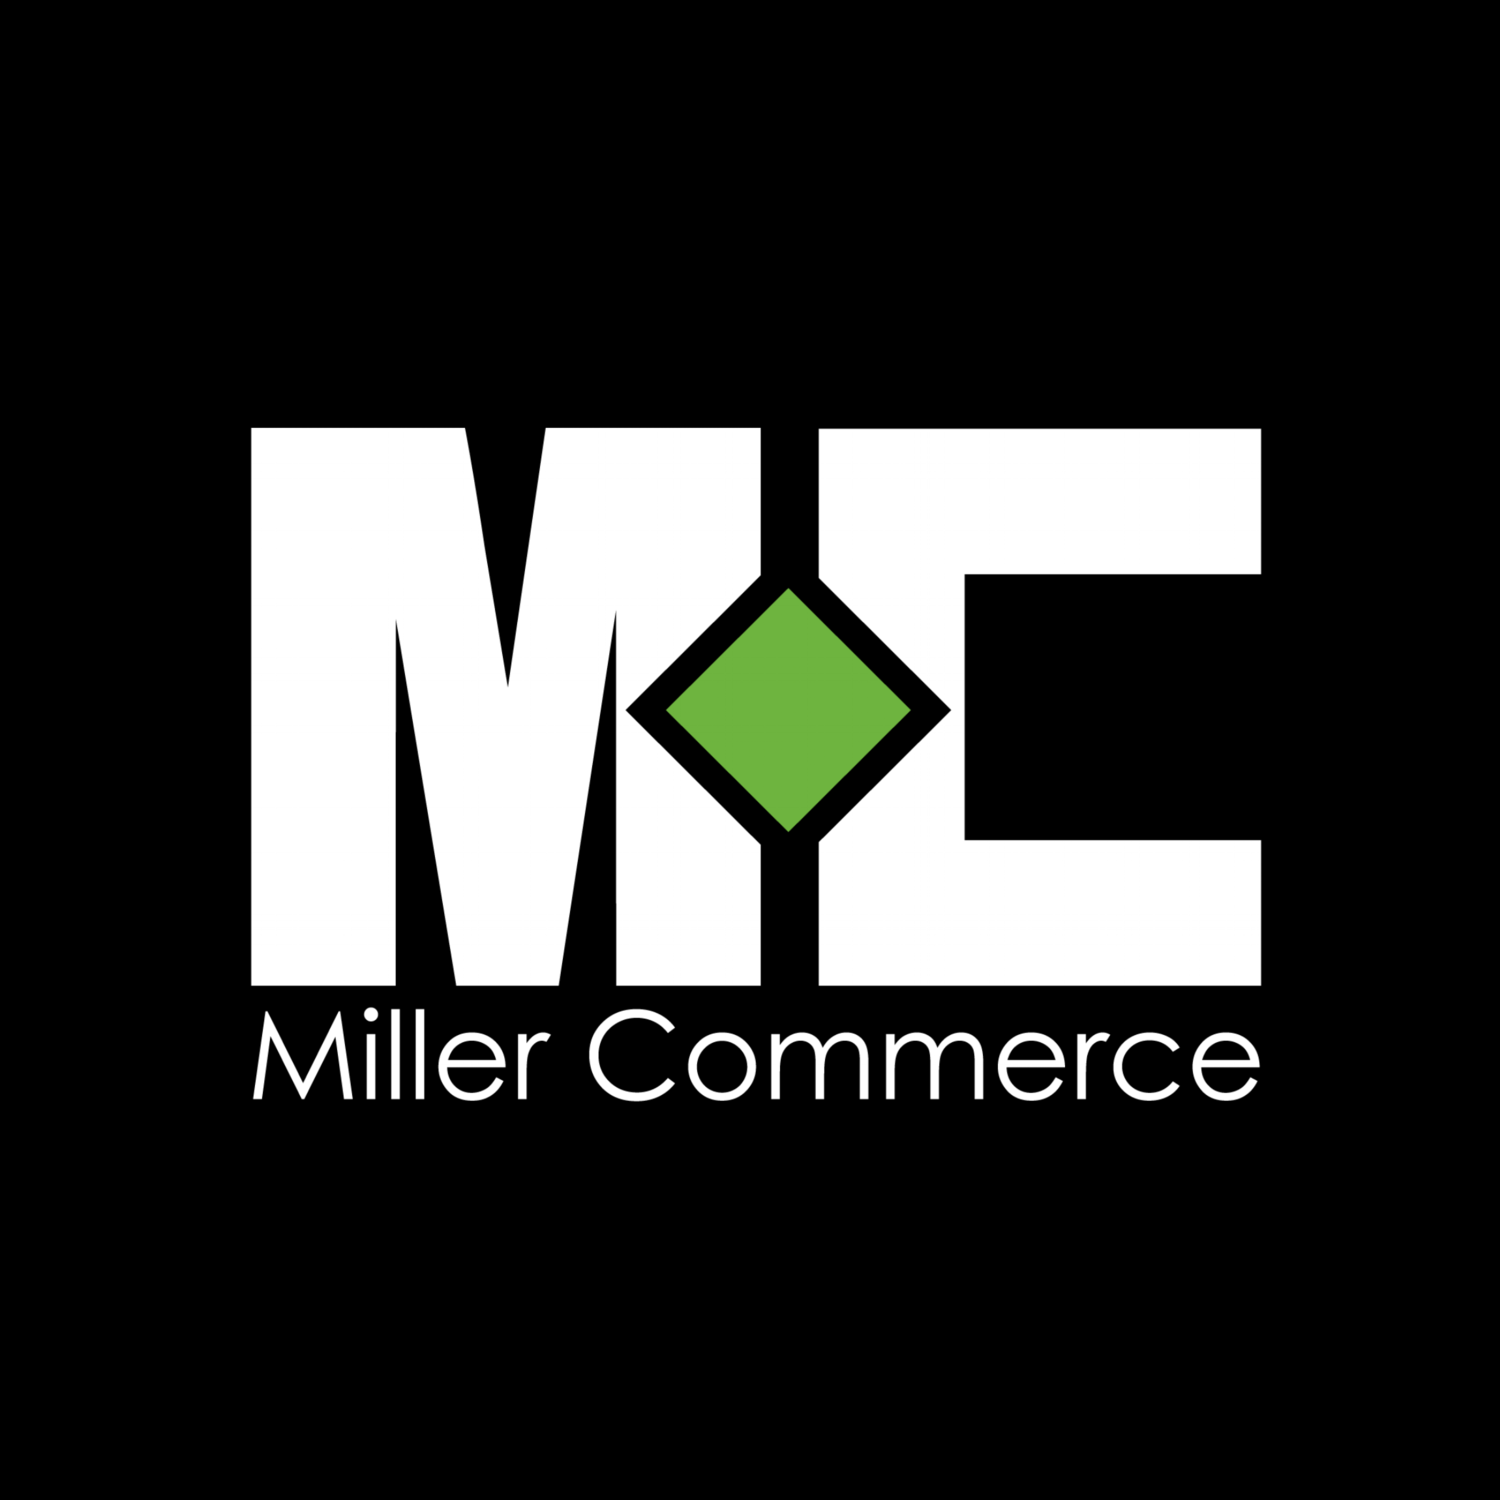 Miller Commerce